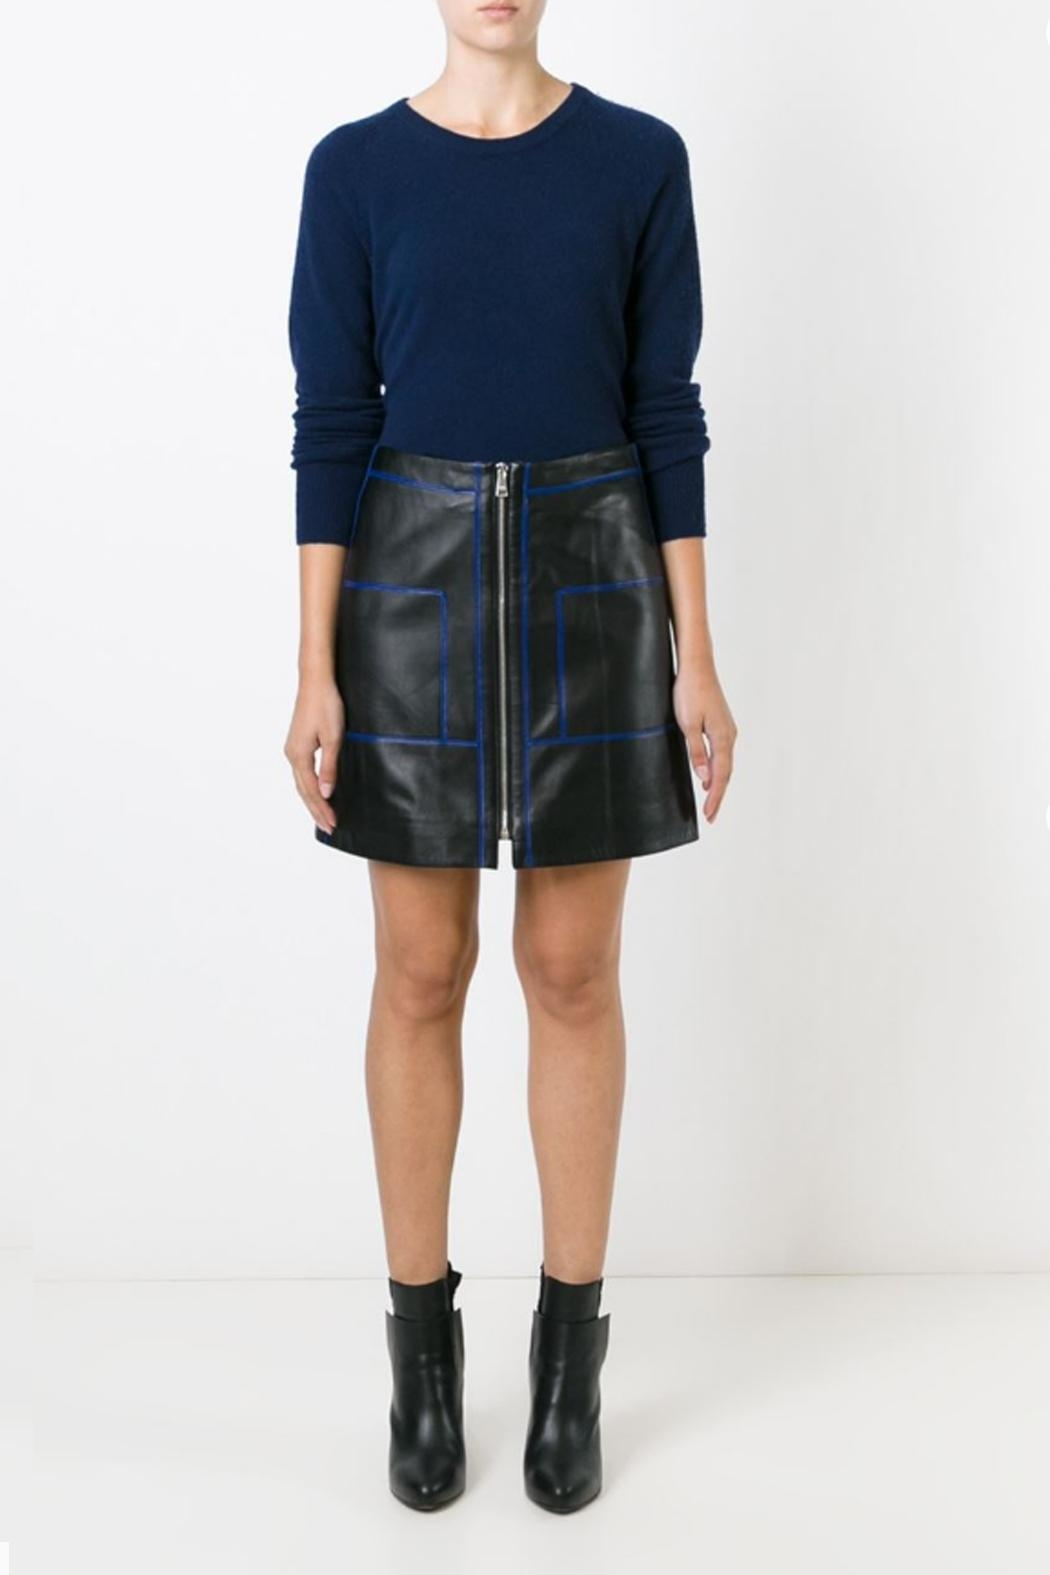 Sonia by Sonia Rykiel Soft Leather Skirt - Main Image